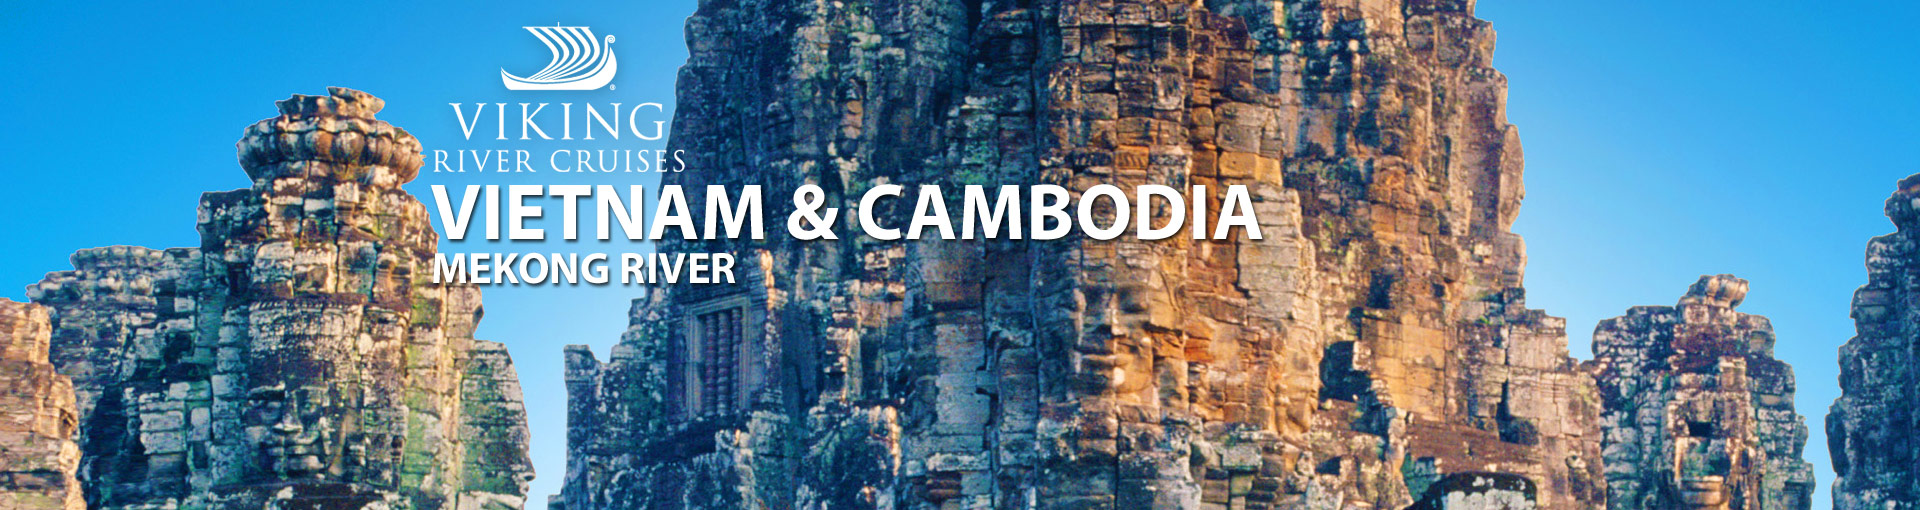 Viking River Cruises to Vietnam and Cambodia